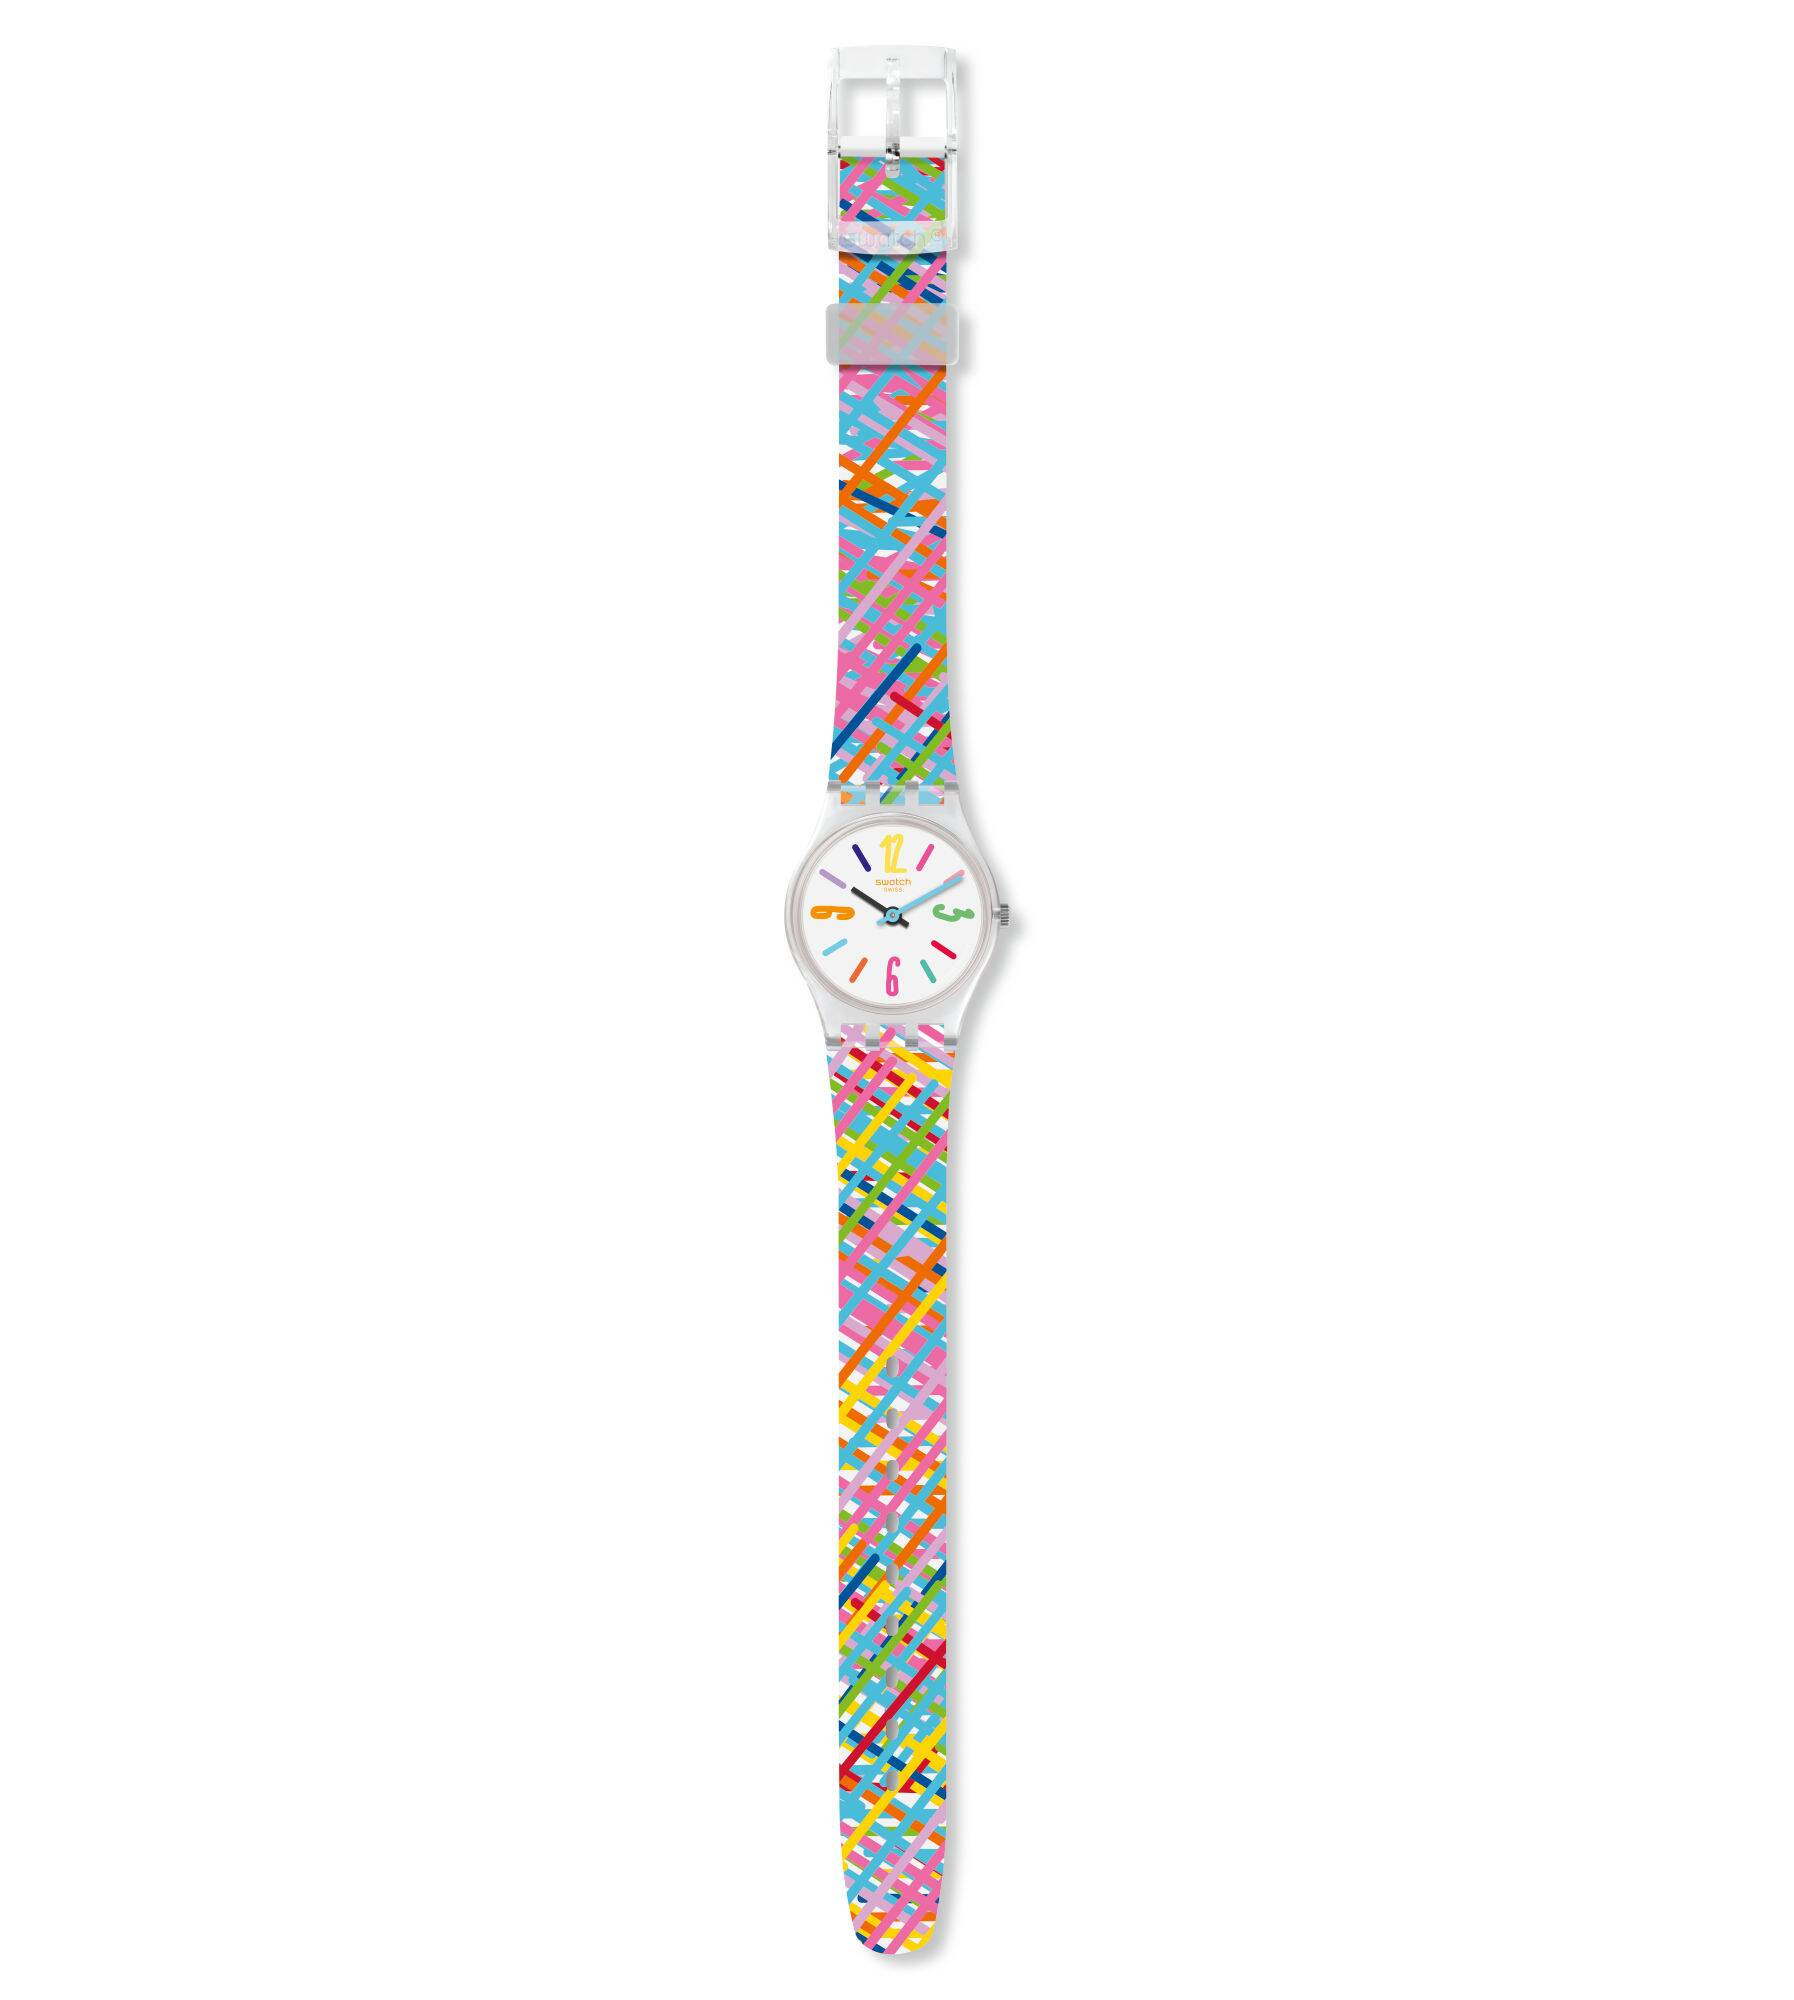 SWATCH WOMAN WATCH TADELAKT REF. LK389